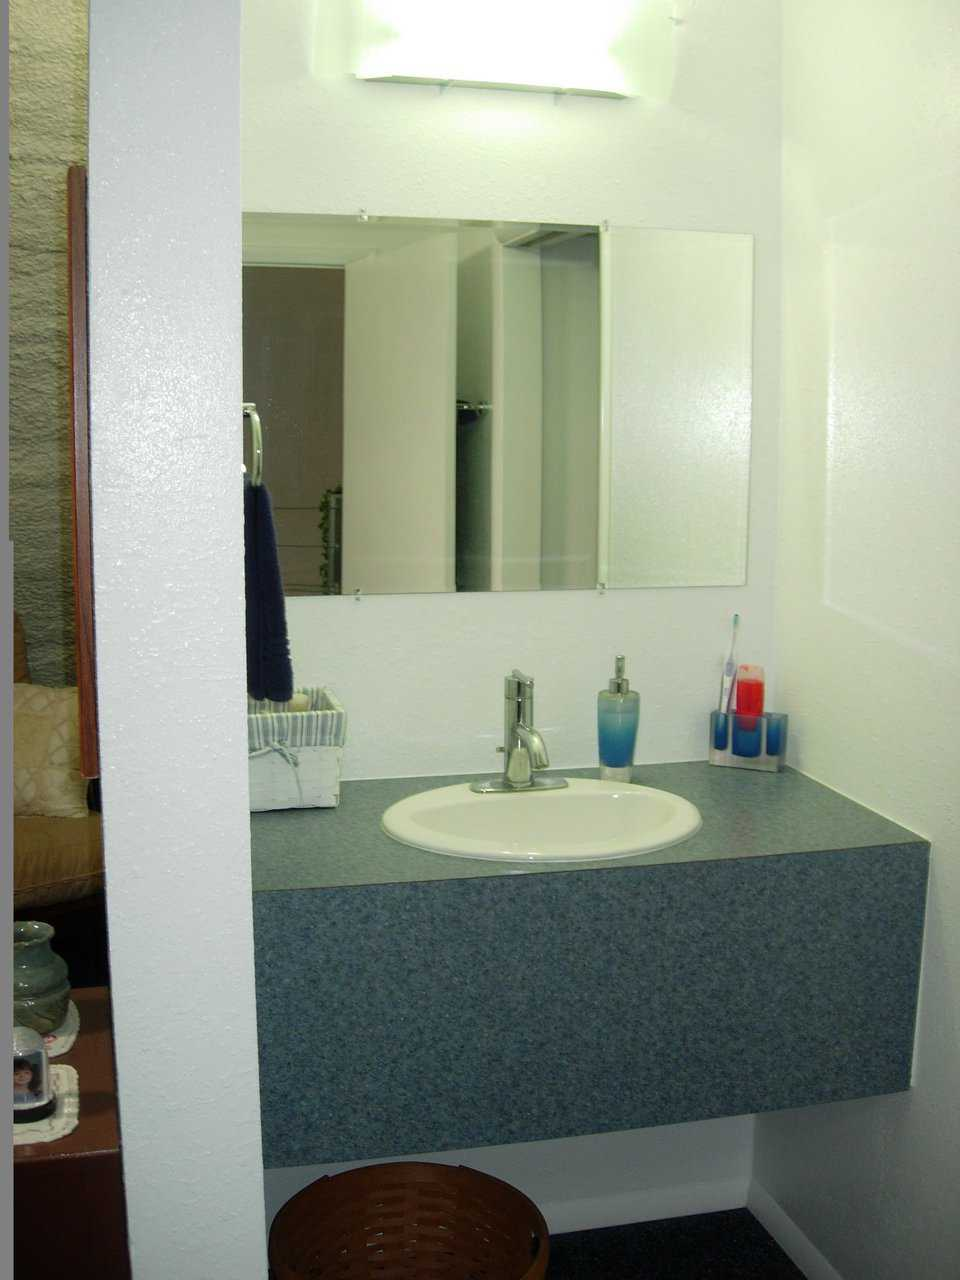 Bathroom is attractive and easily maintained.